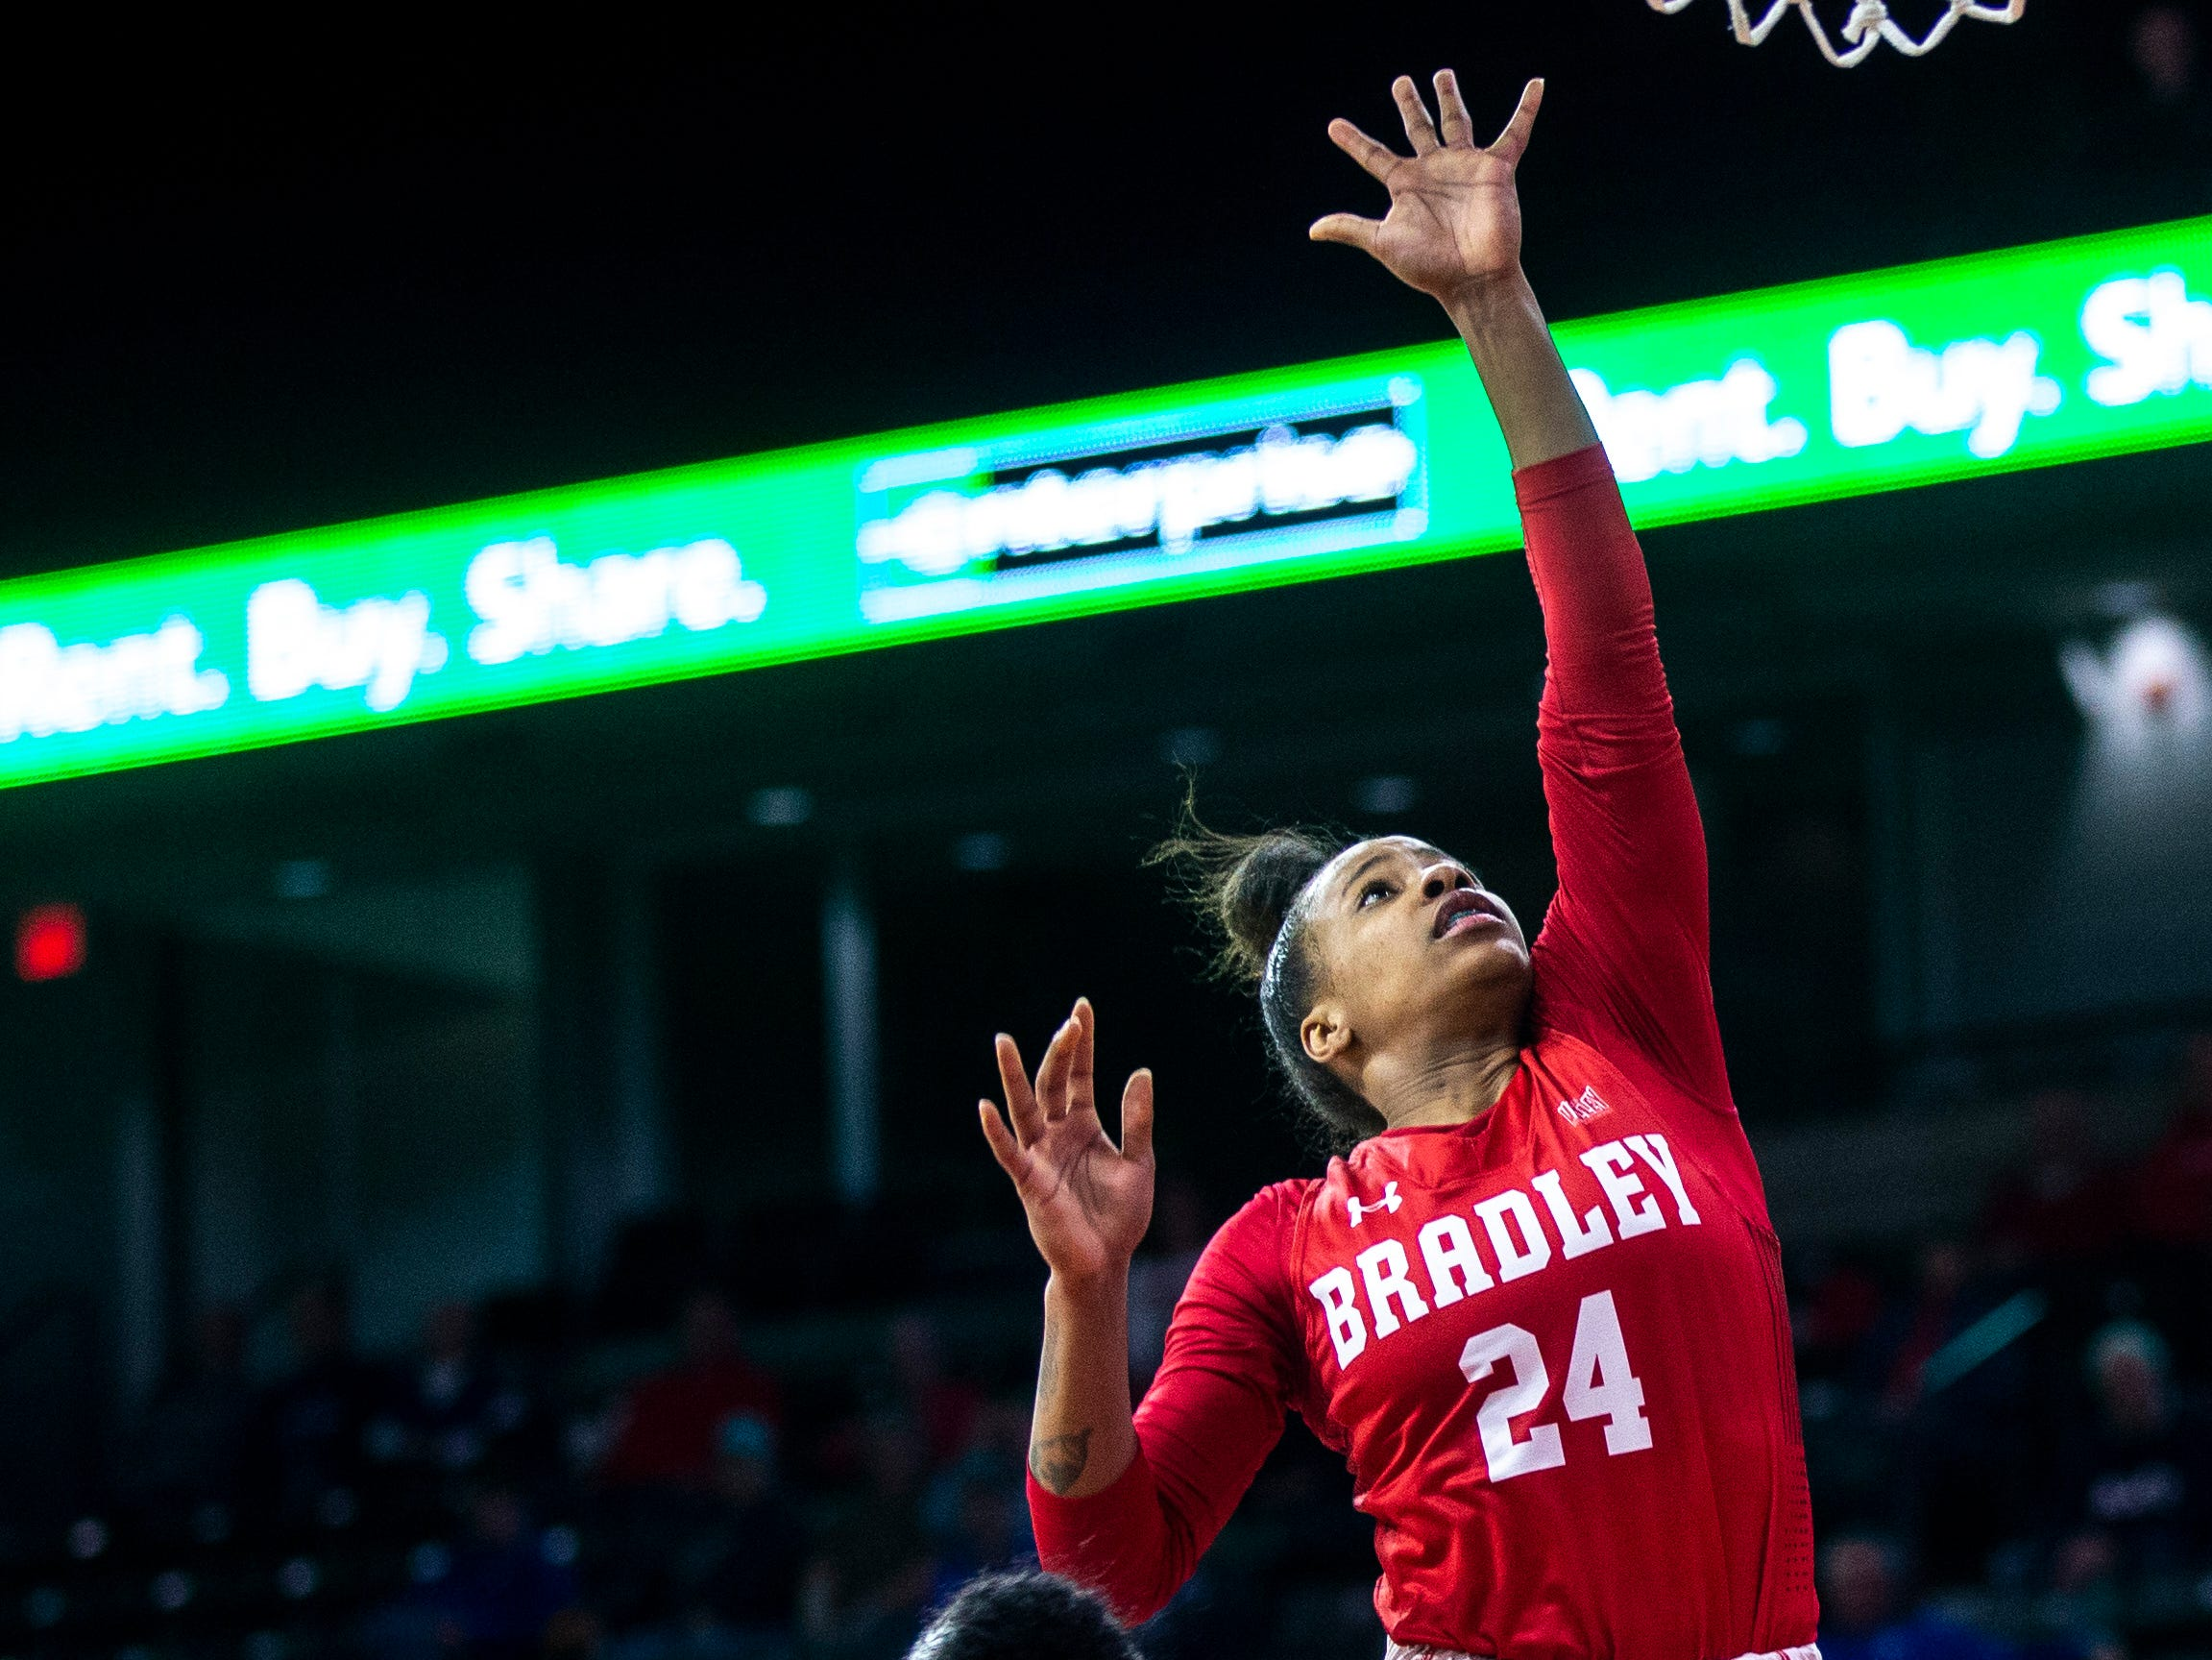 Bradley guard Shunseere Kent (24) attempts a basket while Illinois State guard Viria Livingston (23) defends during a NCAA Missouri Valley Conference women's basketball quarterfinal tournament game, Friday, March 15, 2019, at the TaxSlayer Center in Moline, Illinois.